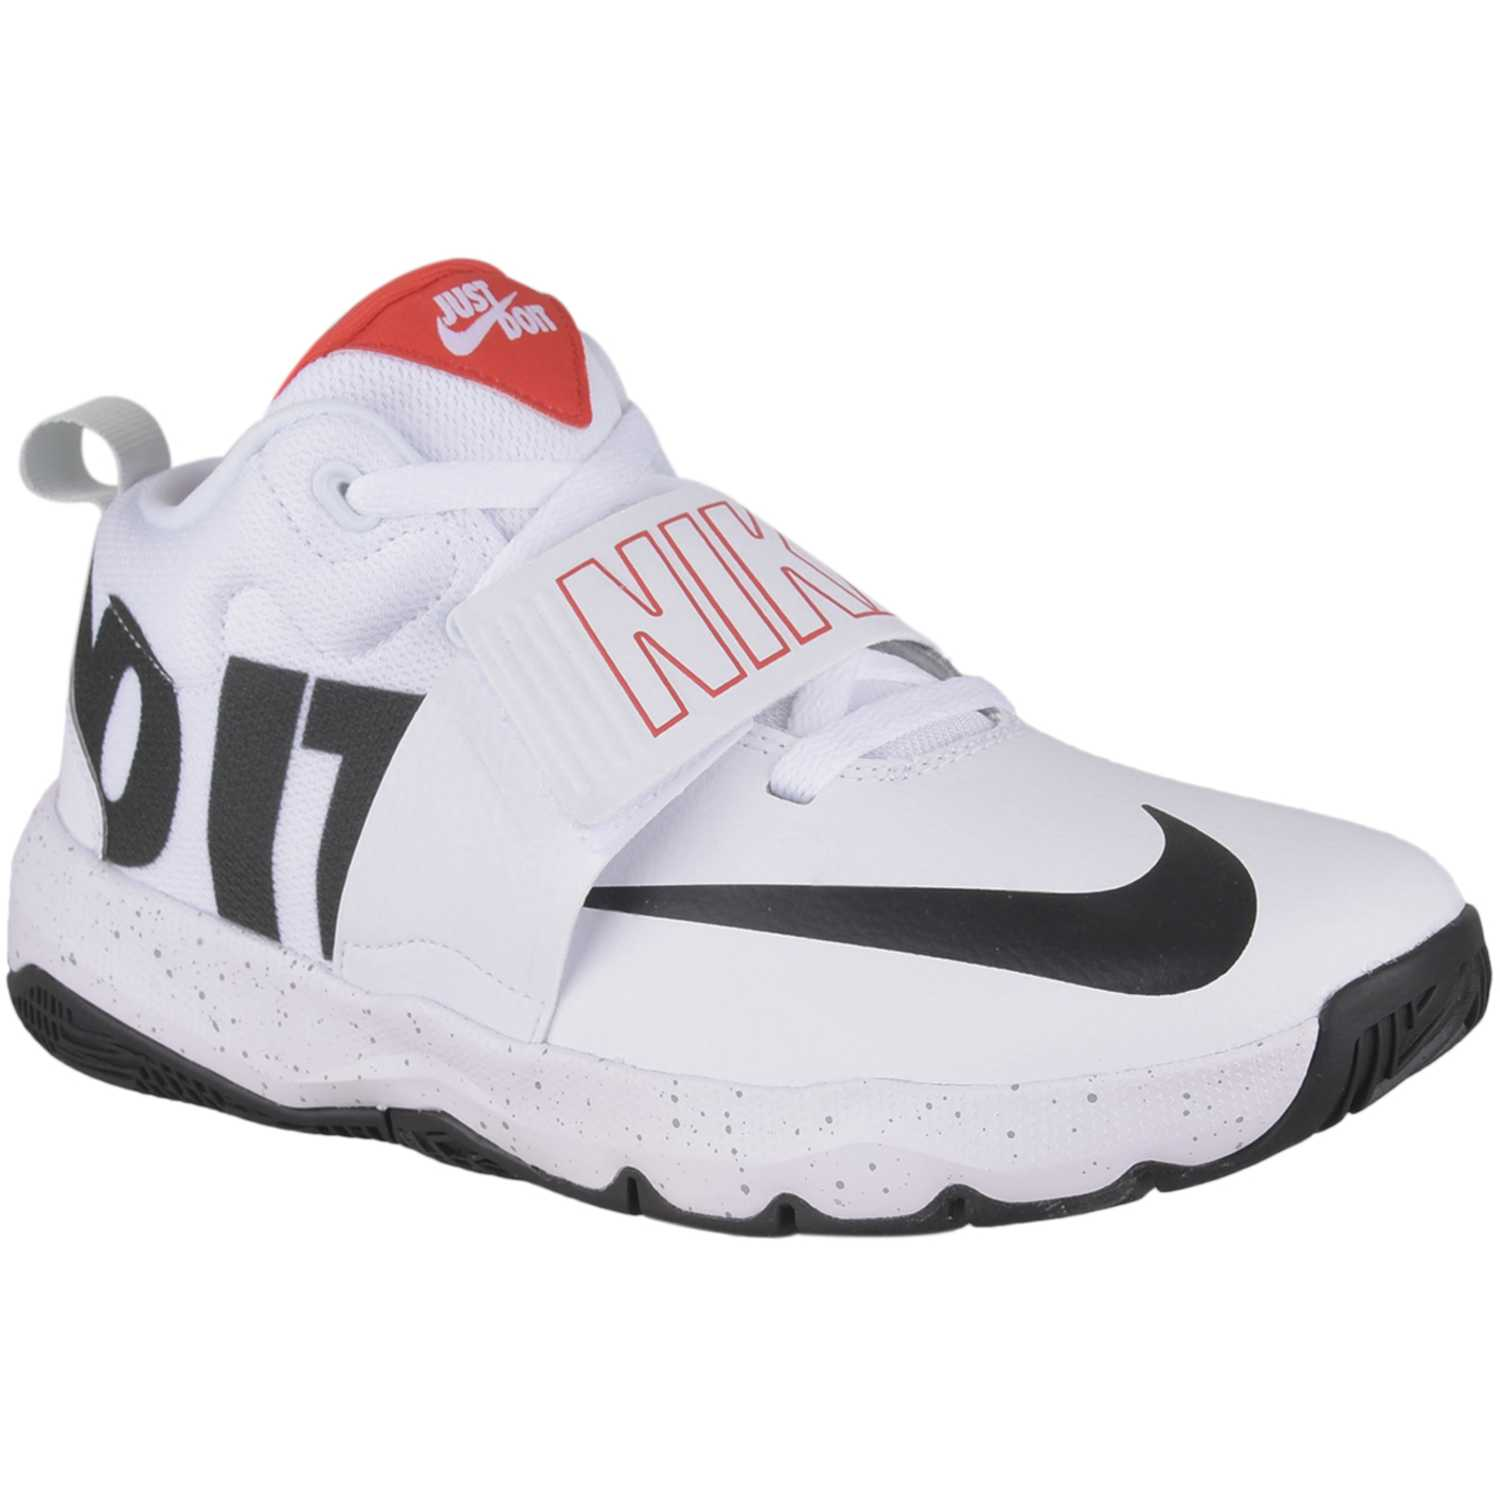 Nike team hustle d 8 jdi bg Blanco / negro Walking